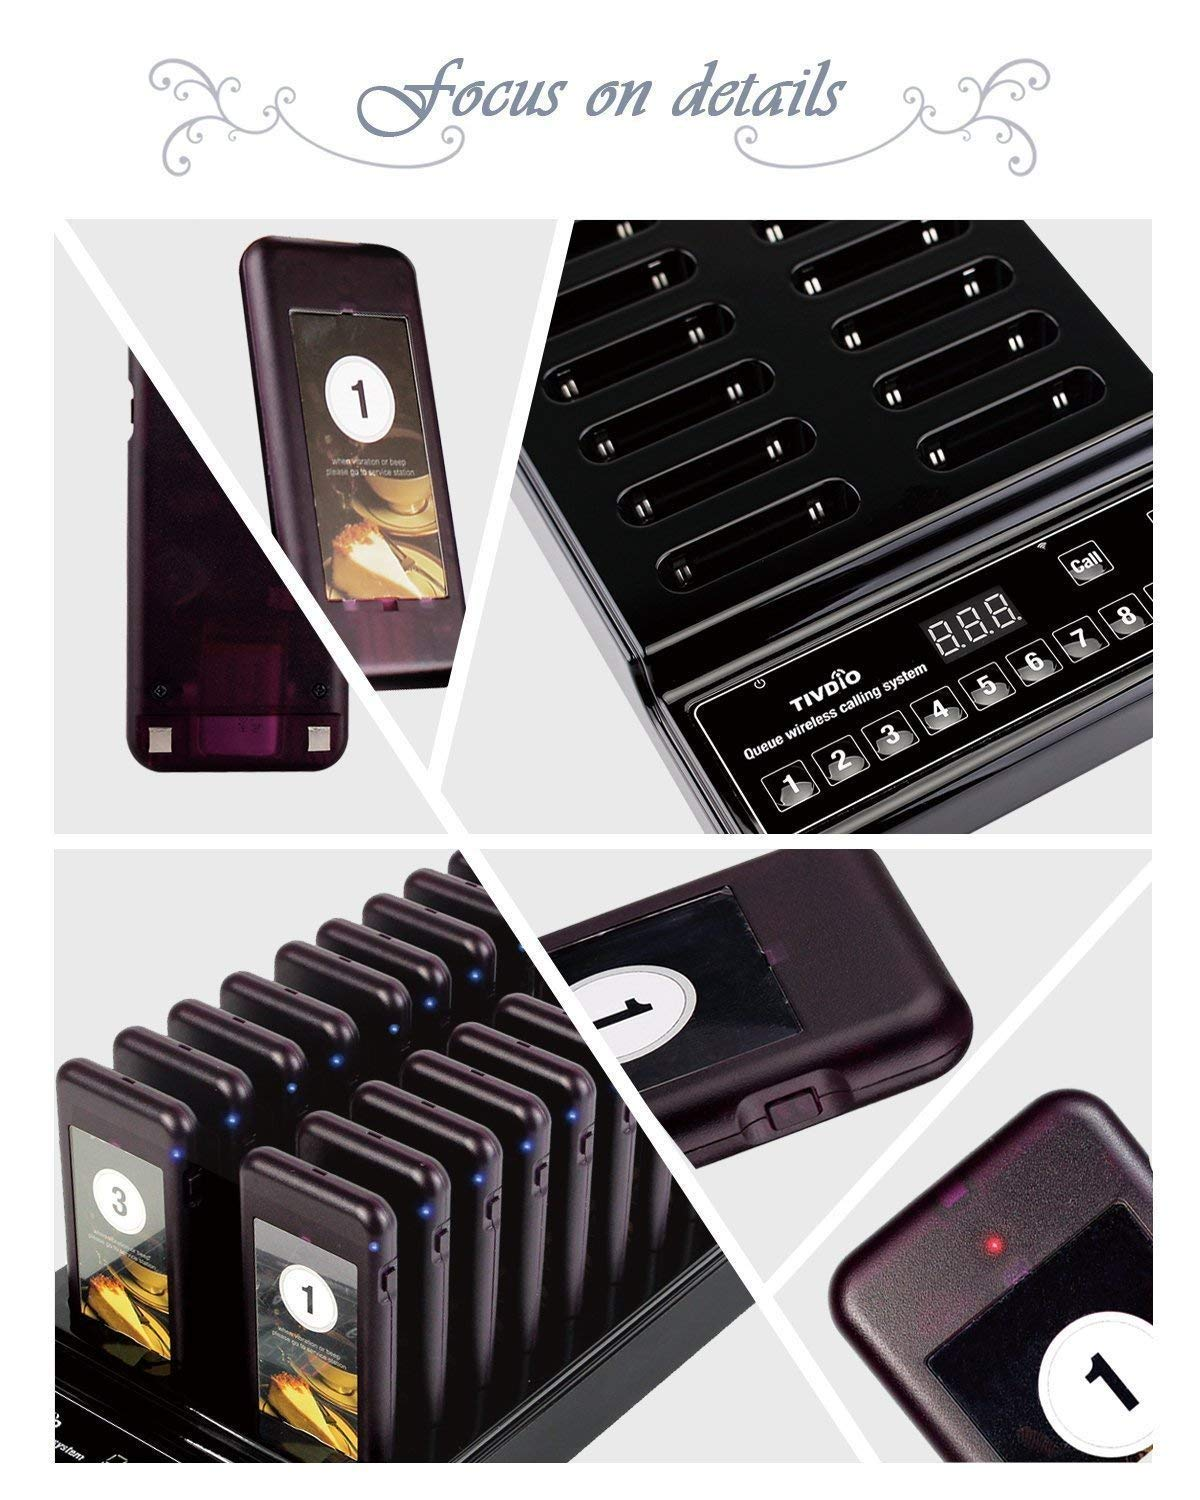 Retekess T112 Restaurant Pager System Queue Wireless Calling System Long Transmission Distance with 30 Coaster Pagers 999 Channel Keypad for Church Nursery Food Truck Coffee Shop by Retekess (Image #3)